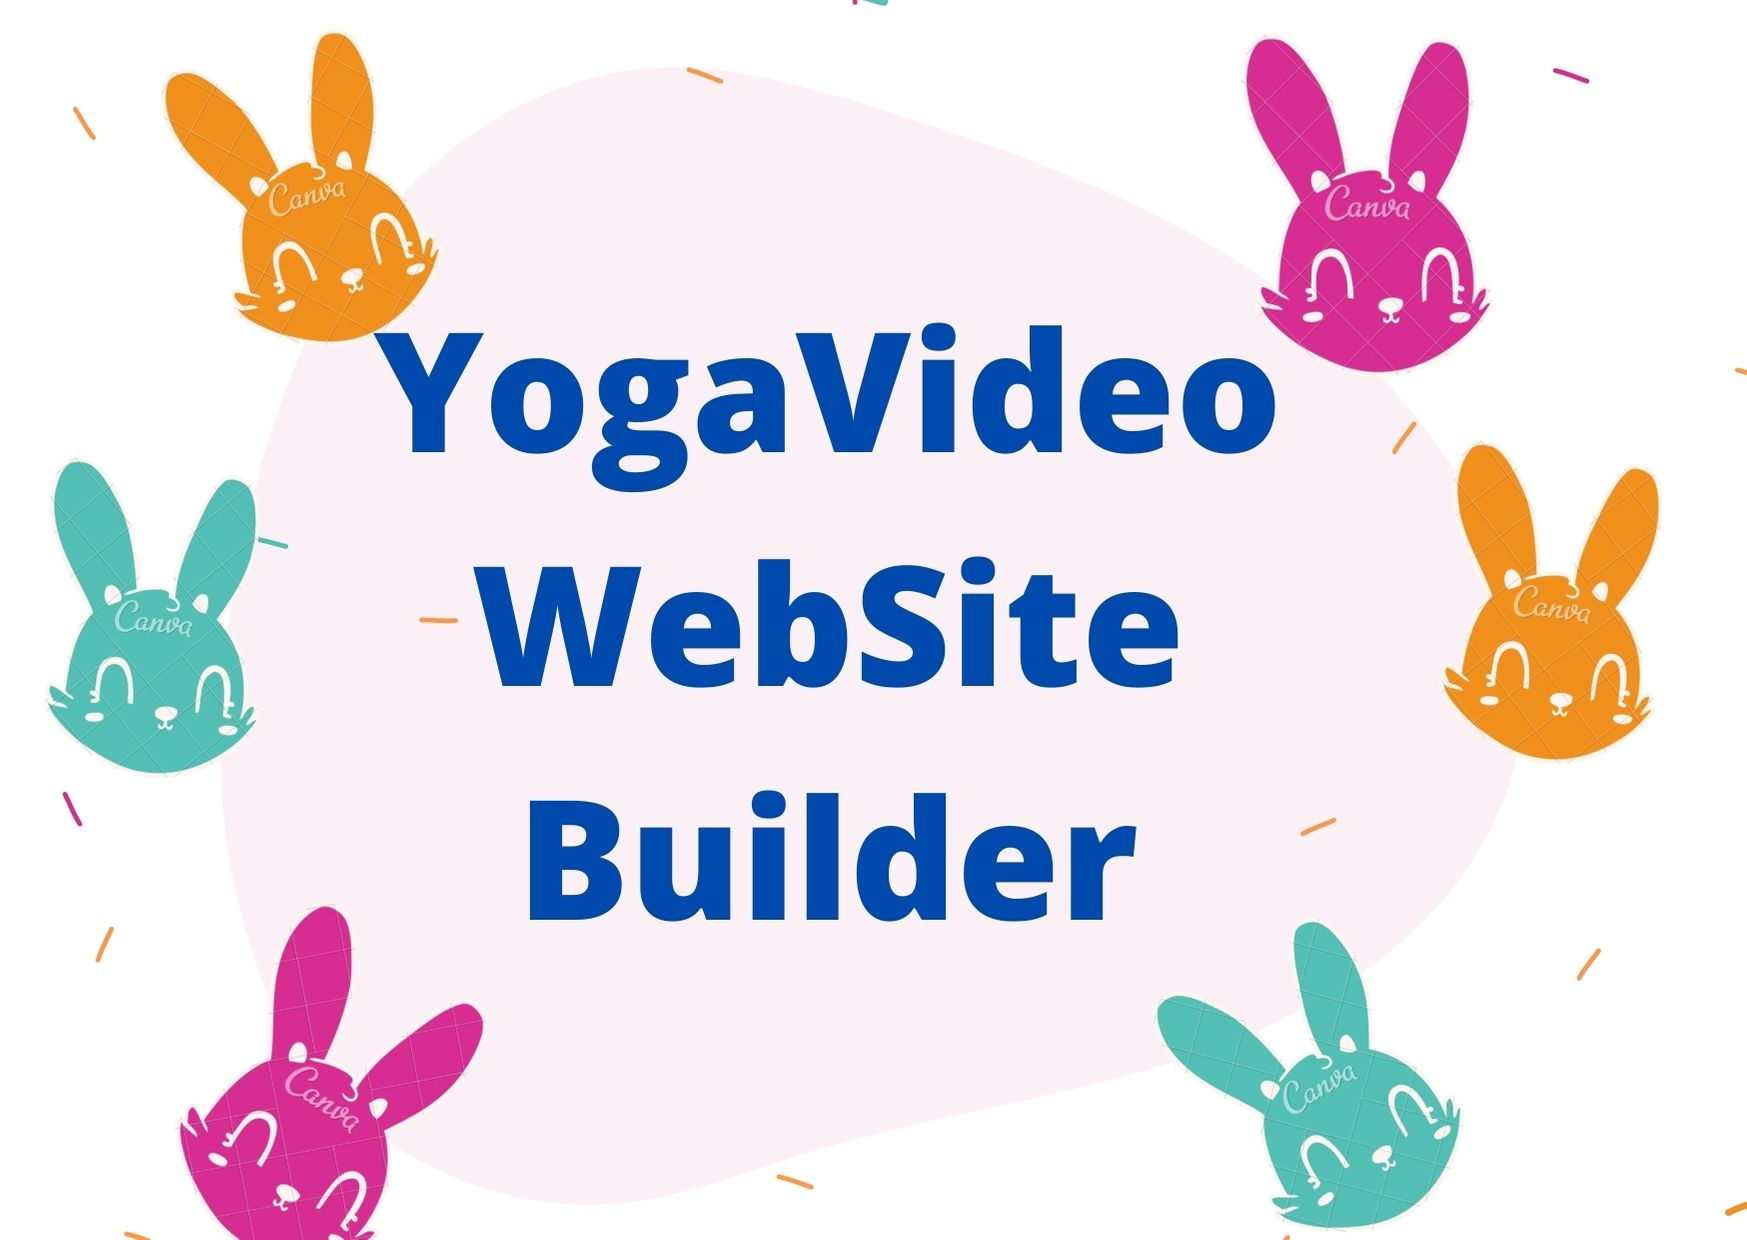 YogaVideo WebSite Builder 2021